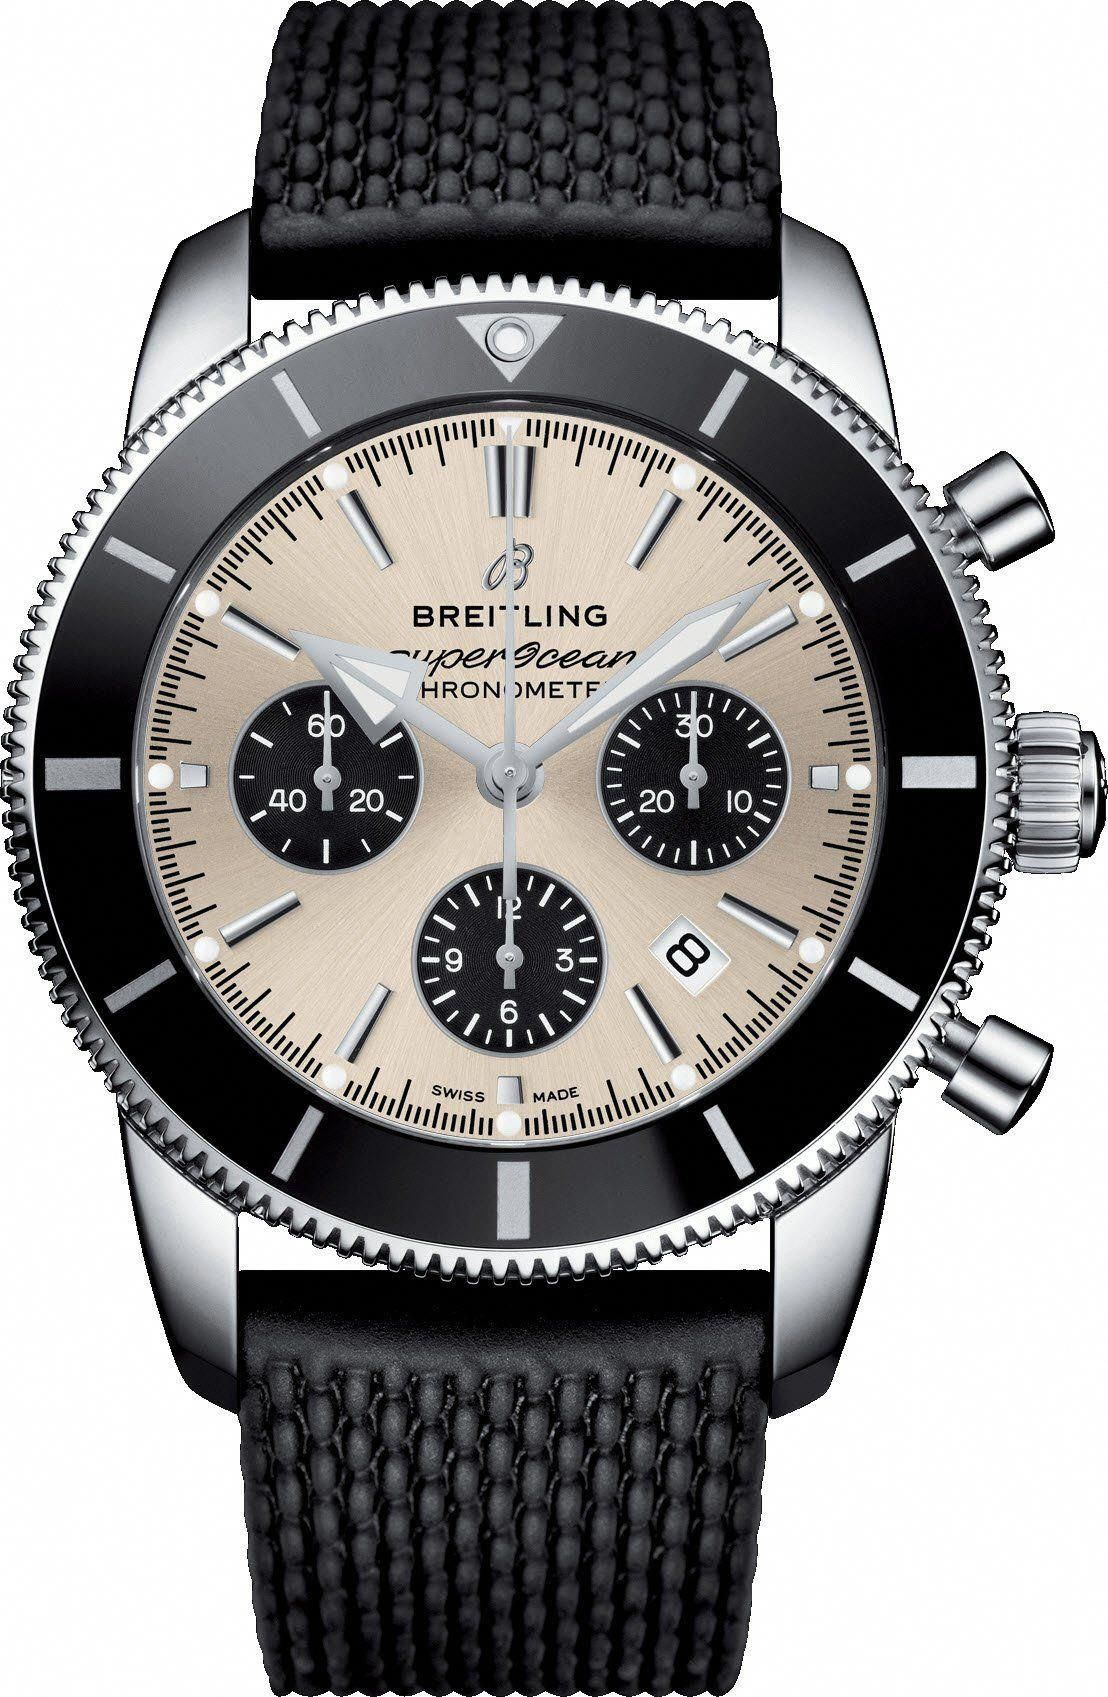 90f253799d849 TAG Heuer Watch Grand Carrera Automatic Chronograph CAV5186.FC6304 Watch   bestwatchesaccessories